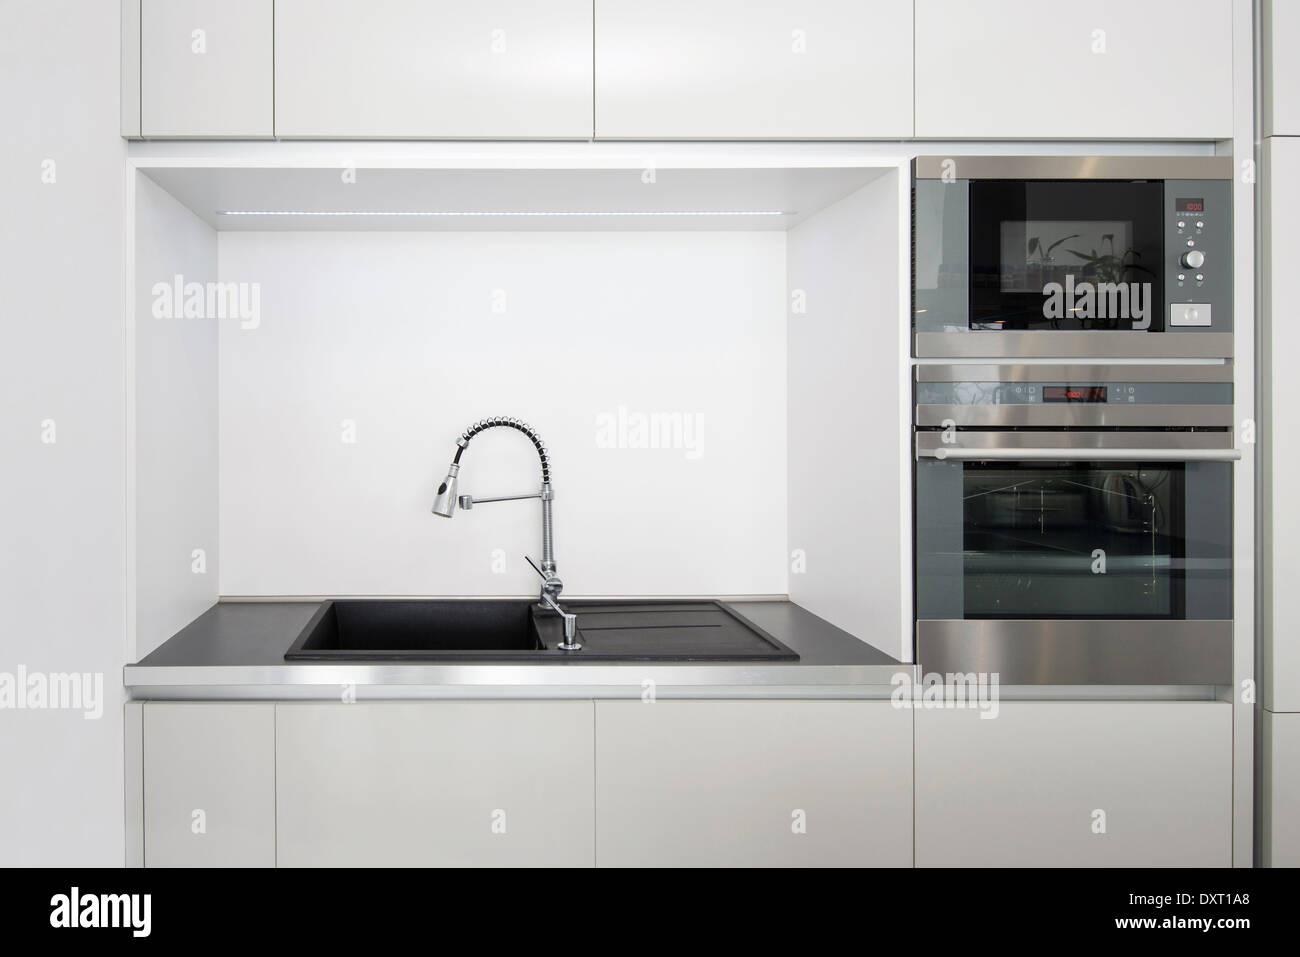 Detail Of Kitchen Built In Appliances And Faucet With Sink